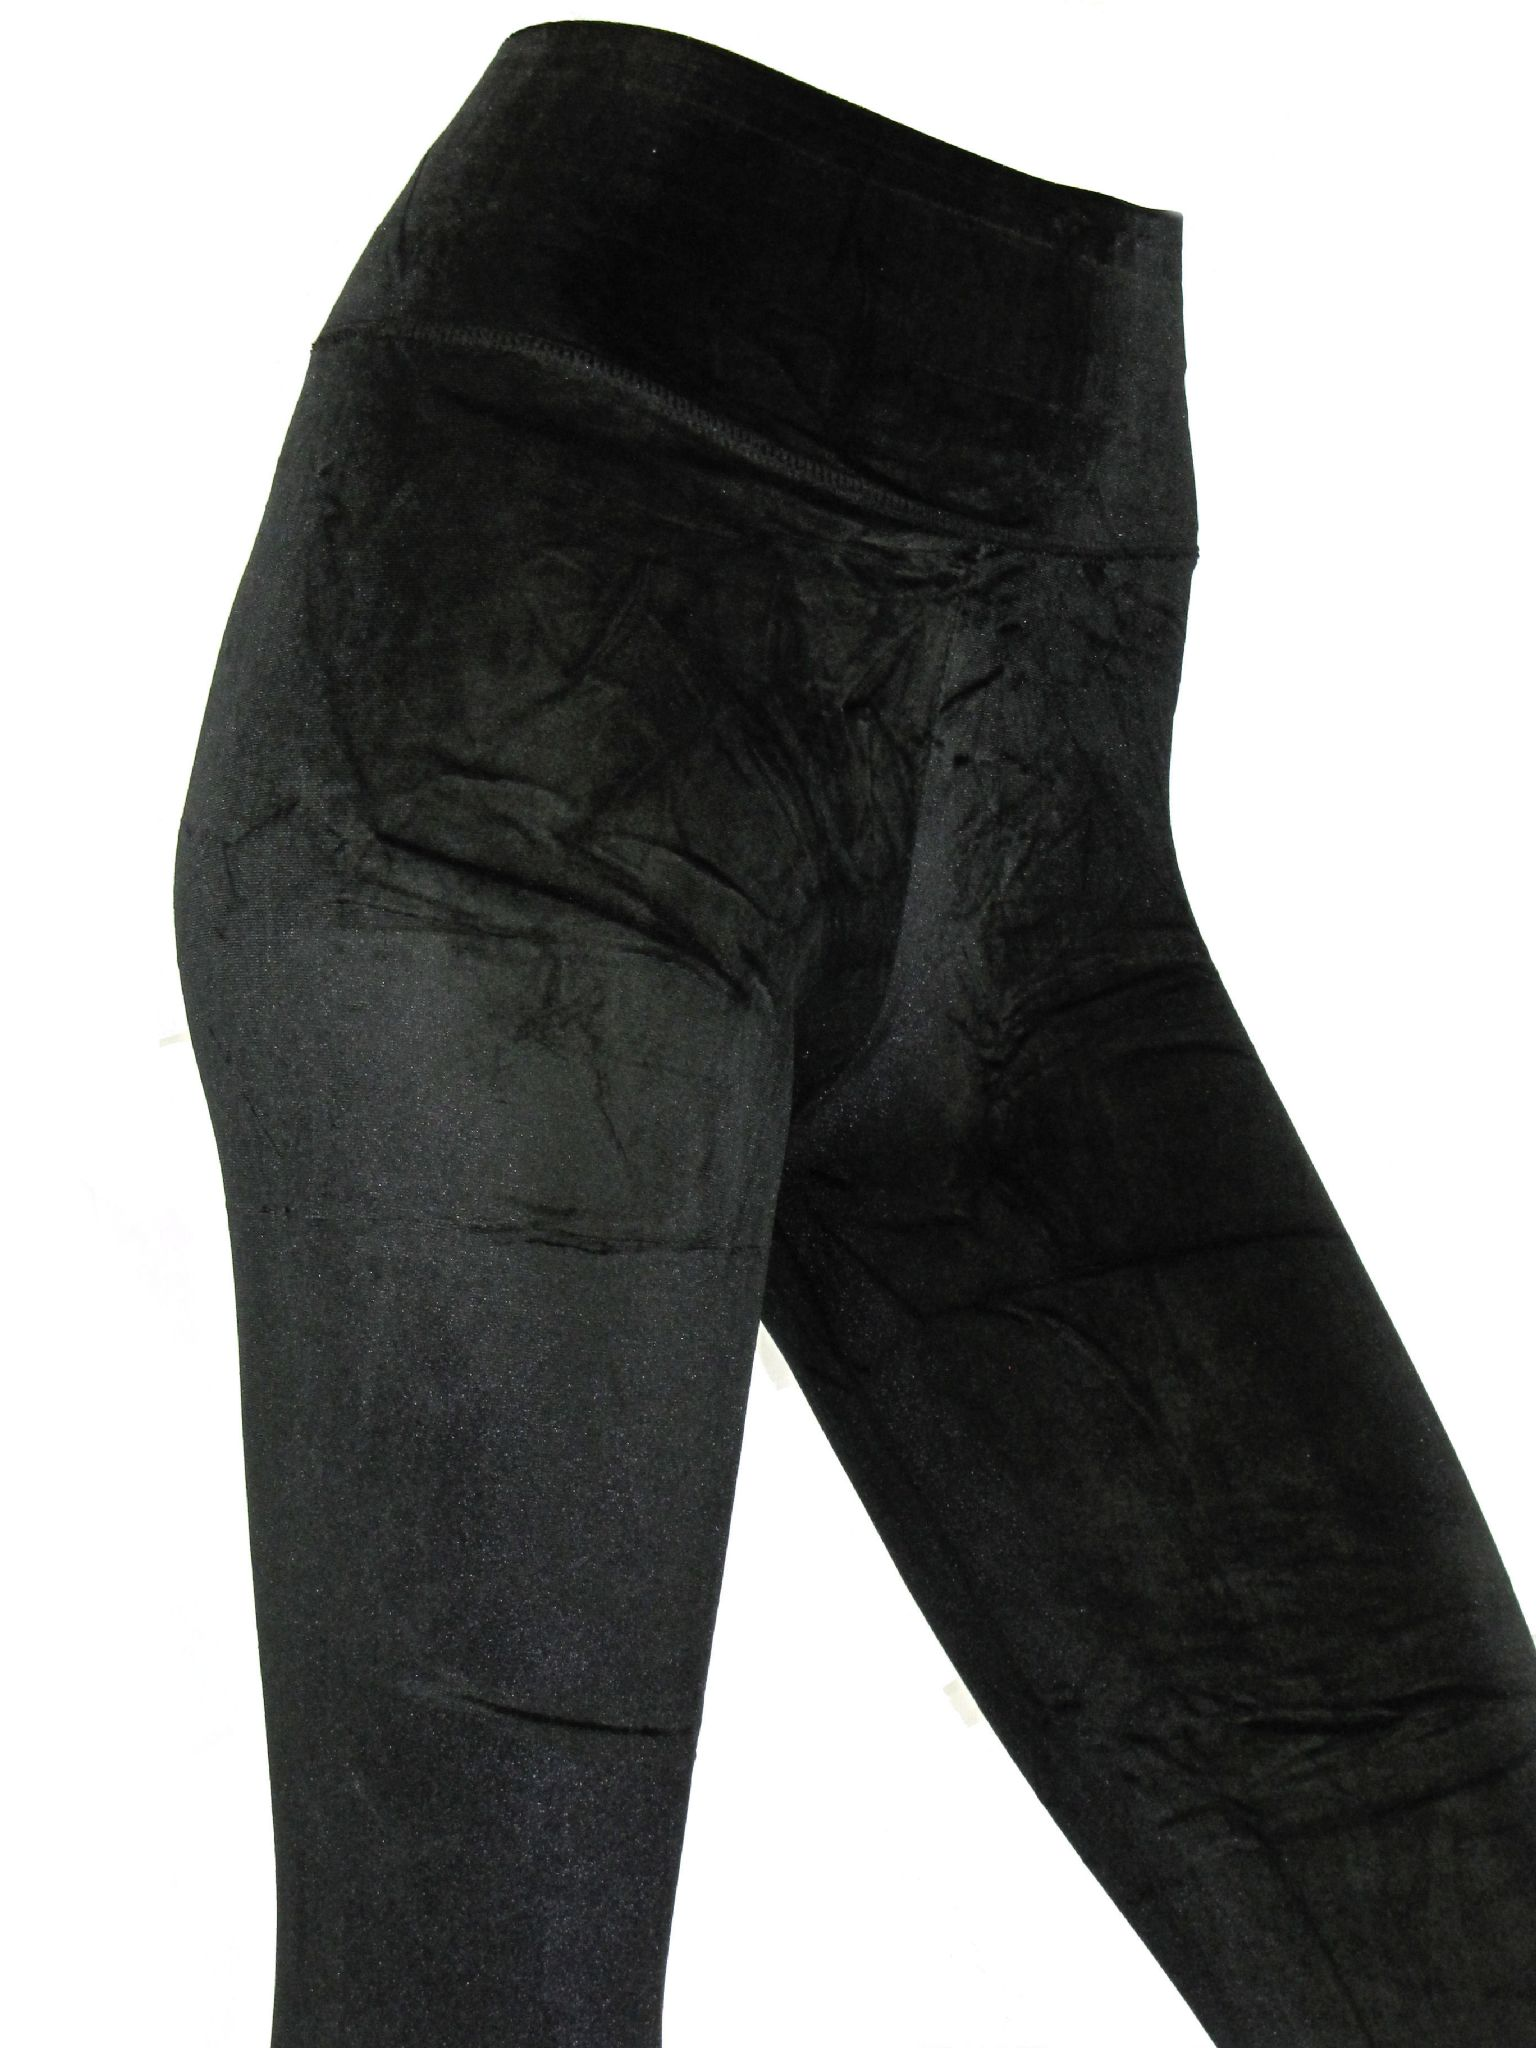 49dfe158c1e Womens High Waist Velvet Leggings Black